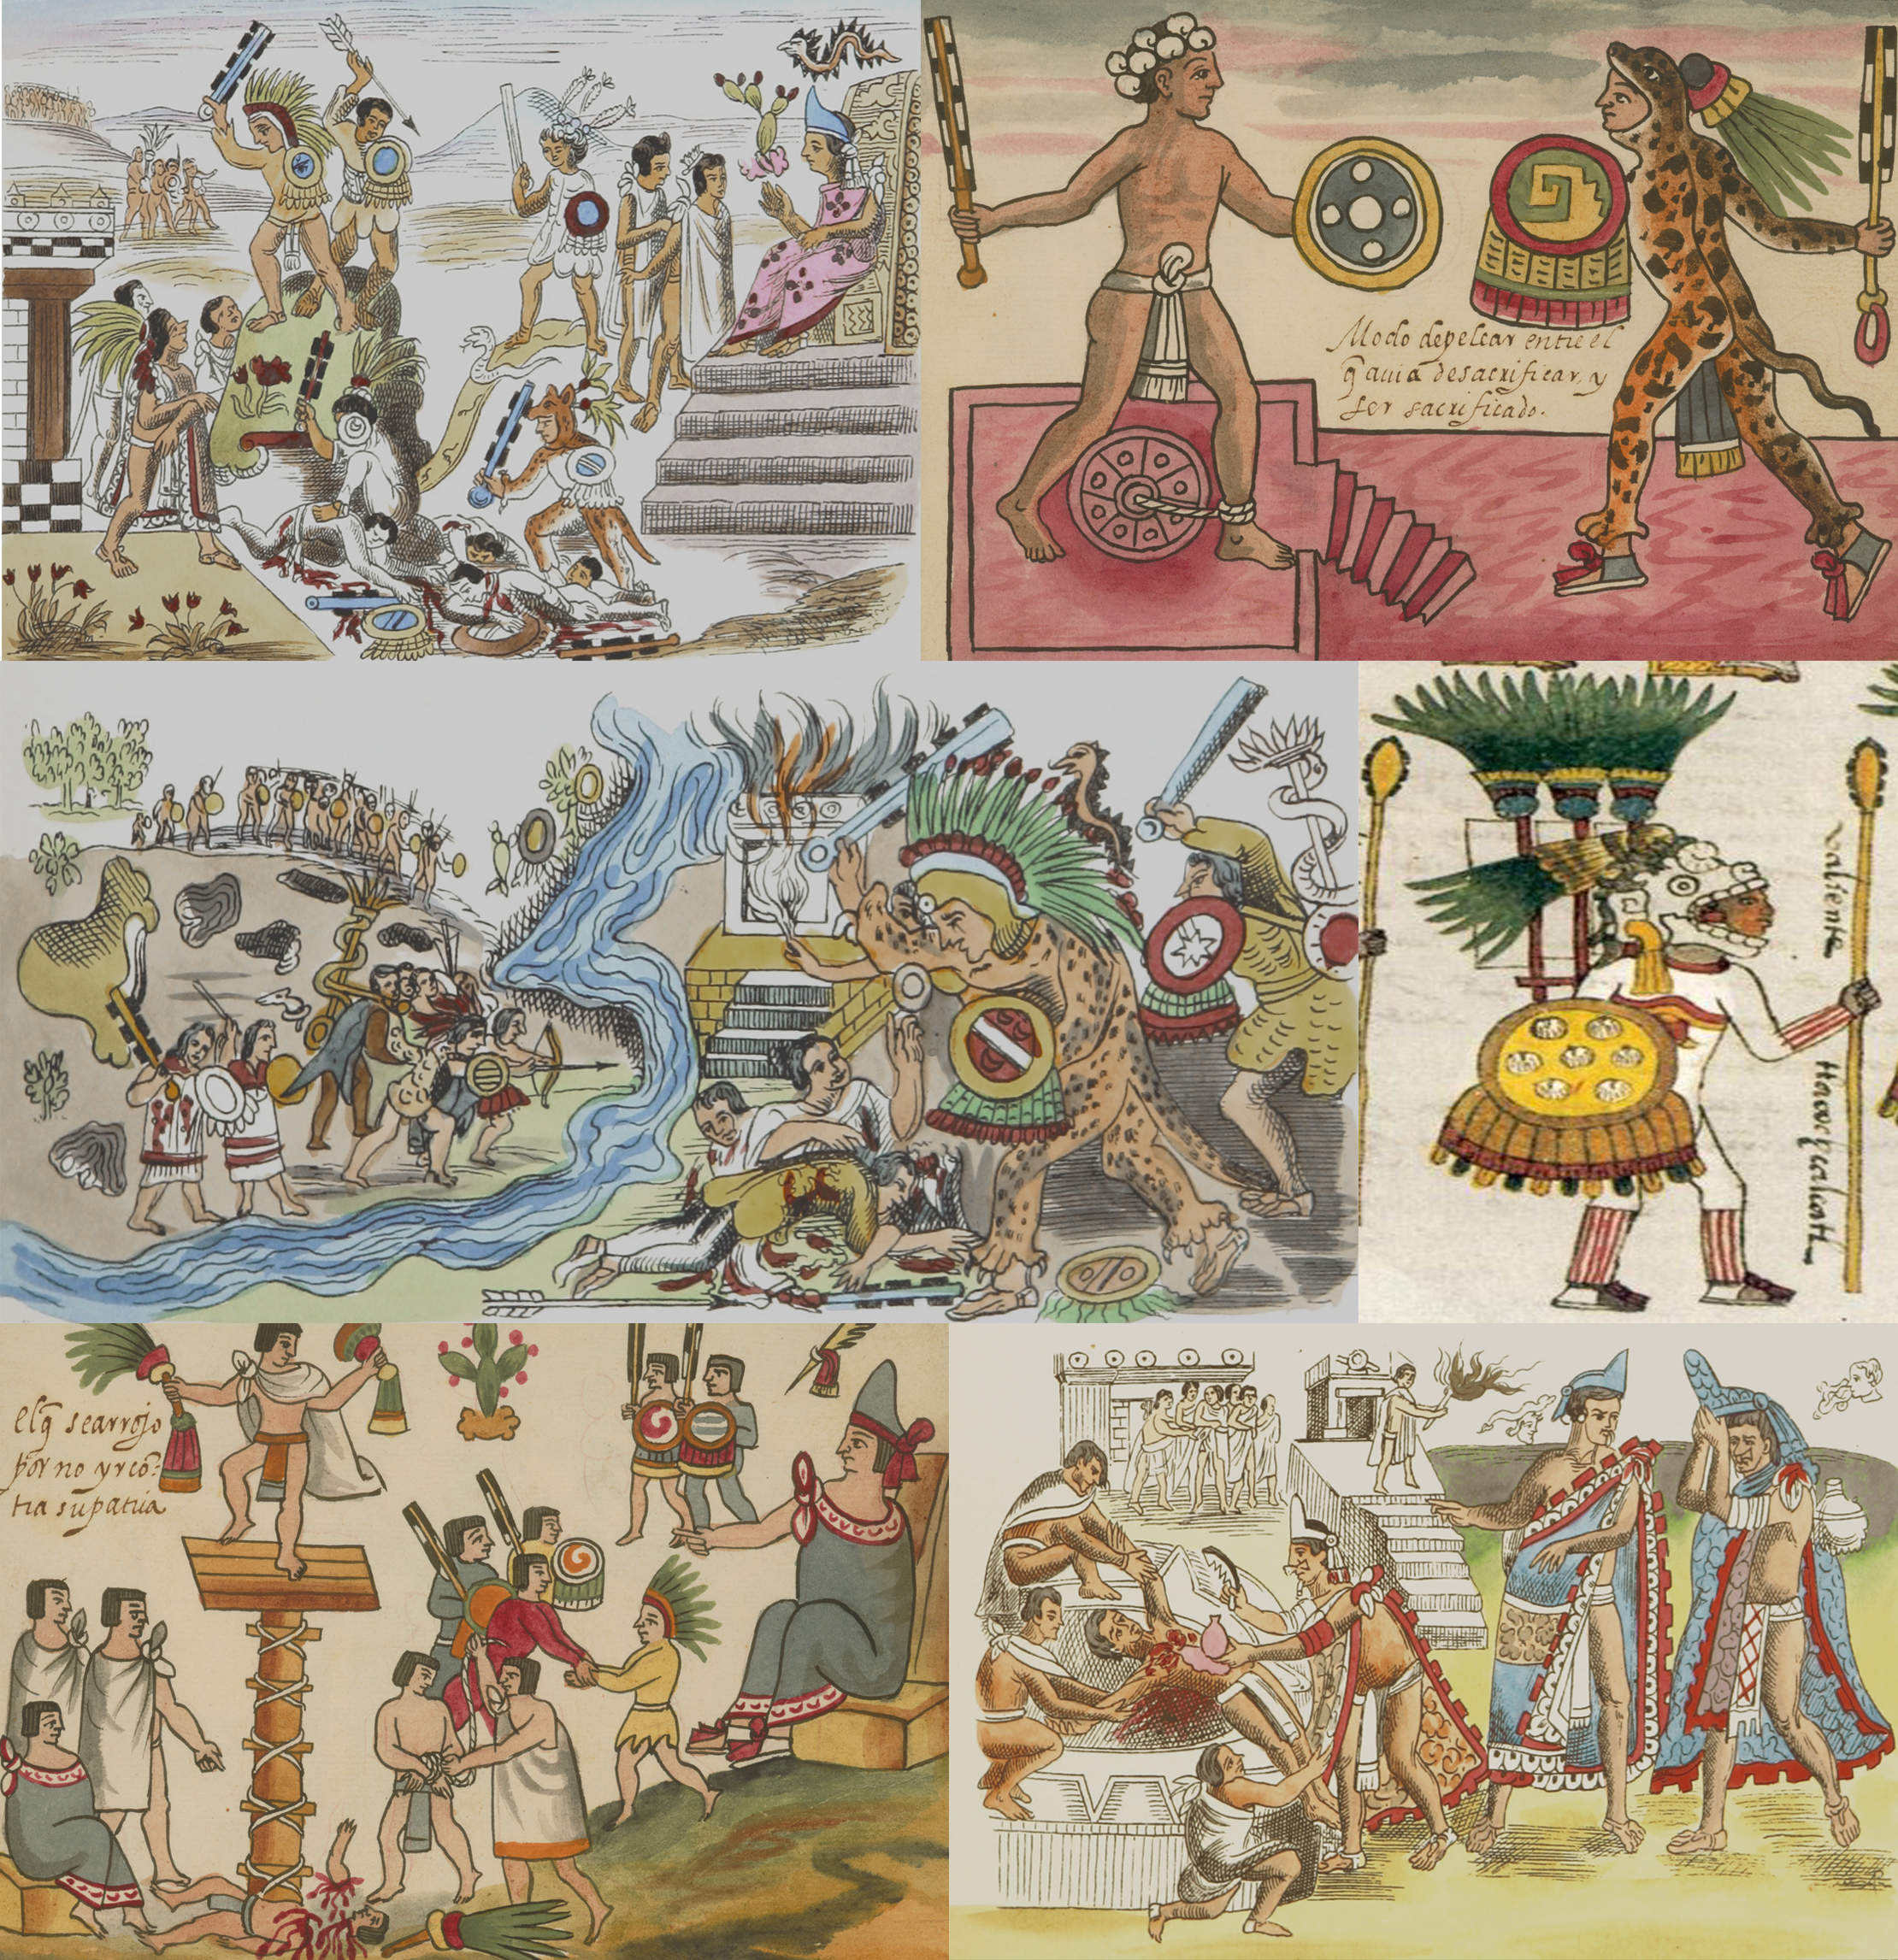 The Conquest of the Americas | Anti-Social Studies: A History Podcast + Blog Source: By Mabarlabin [CC BY-SA 3.0 (https://creativecommons.org/licenses/by-sa/3.0)], from Wikimedia Commons